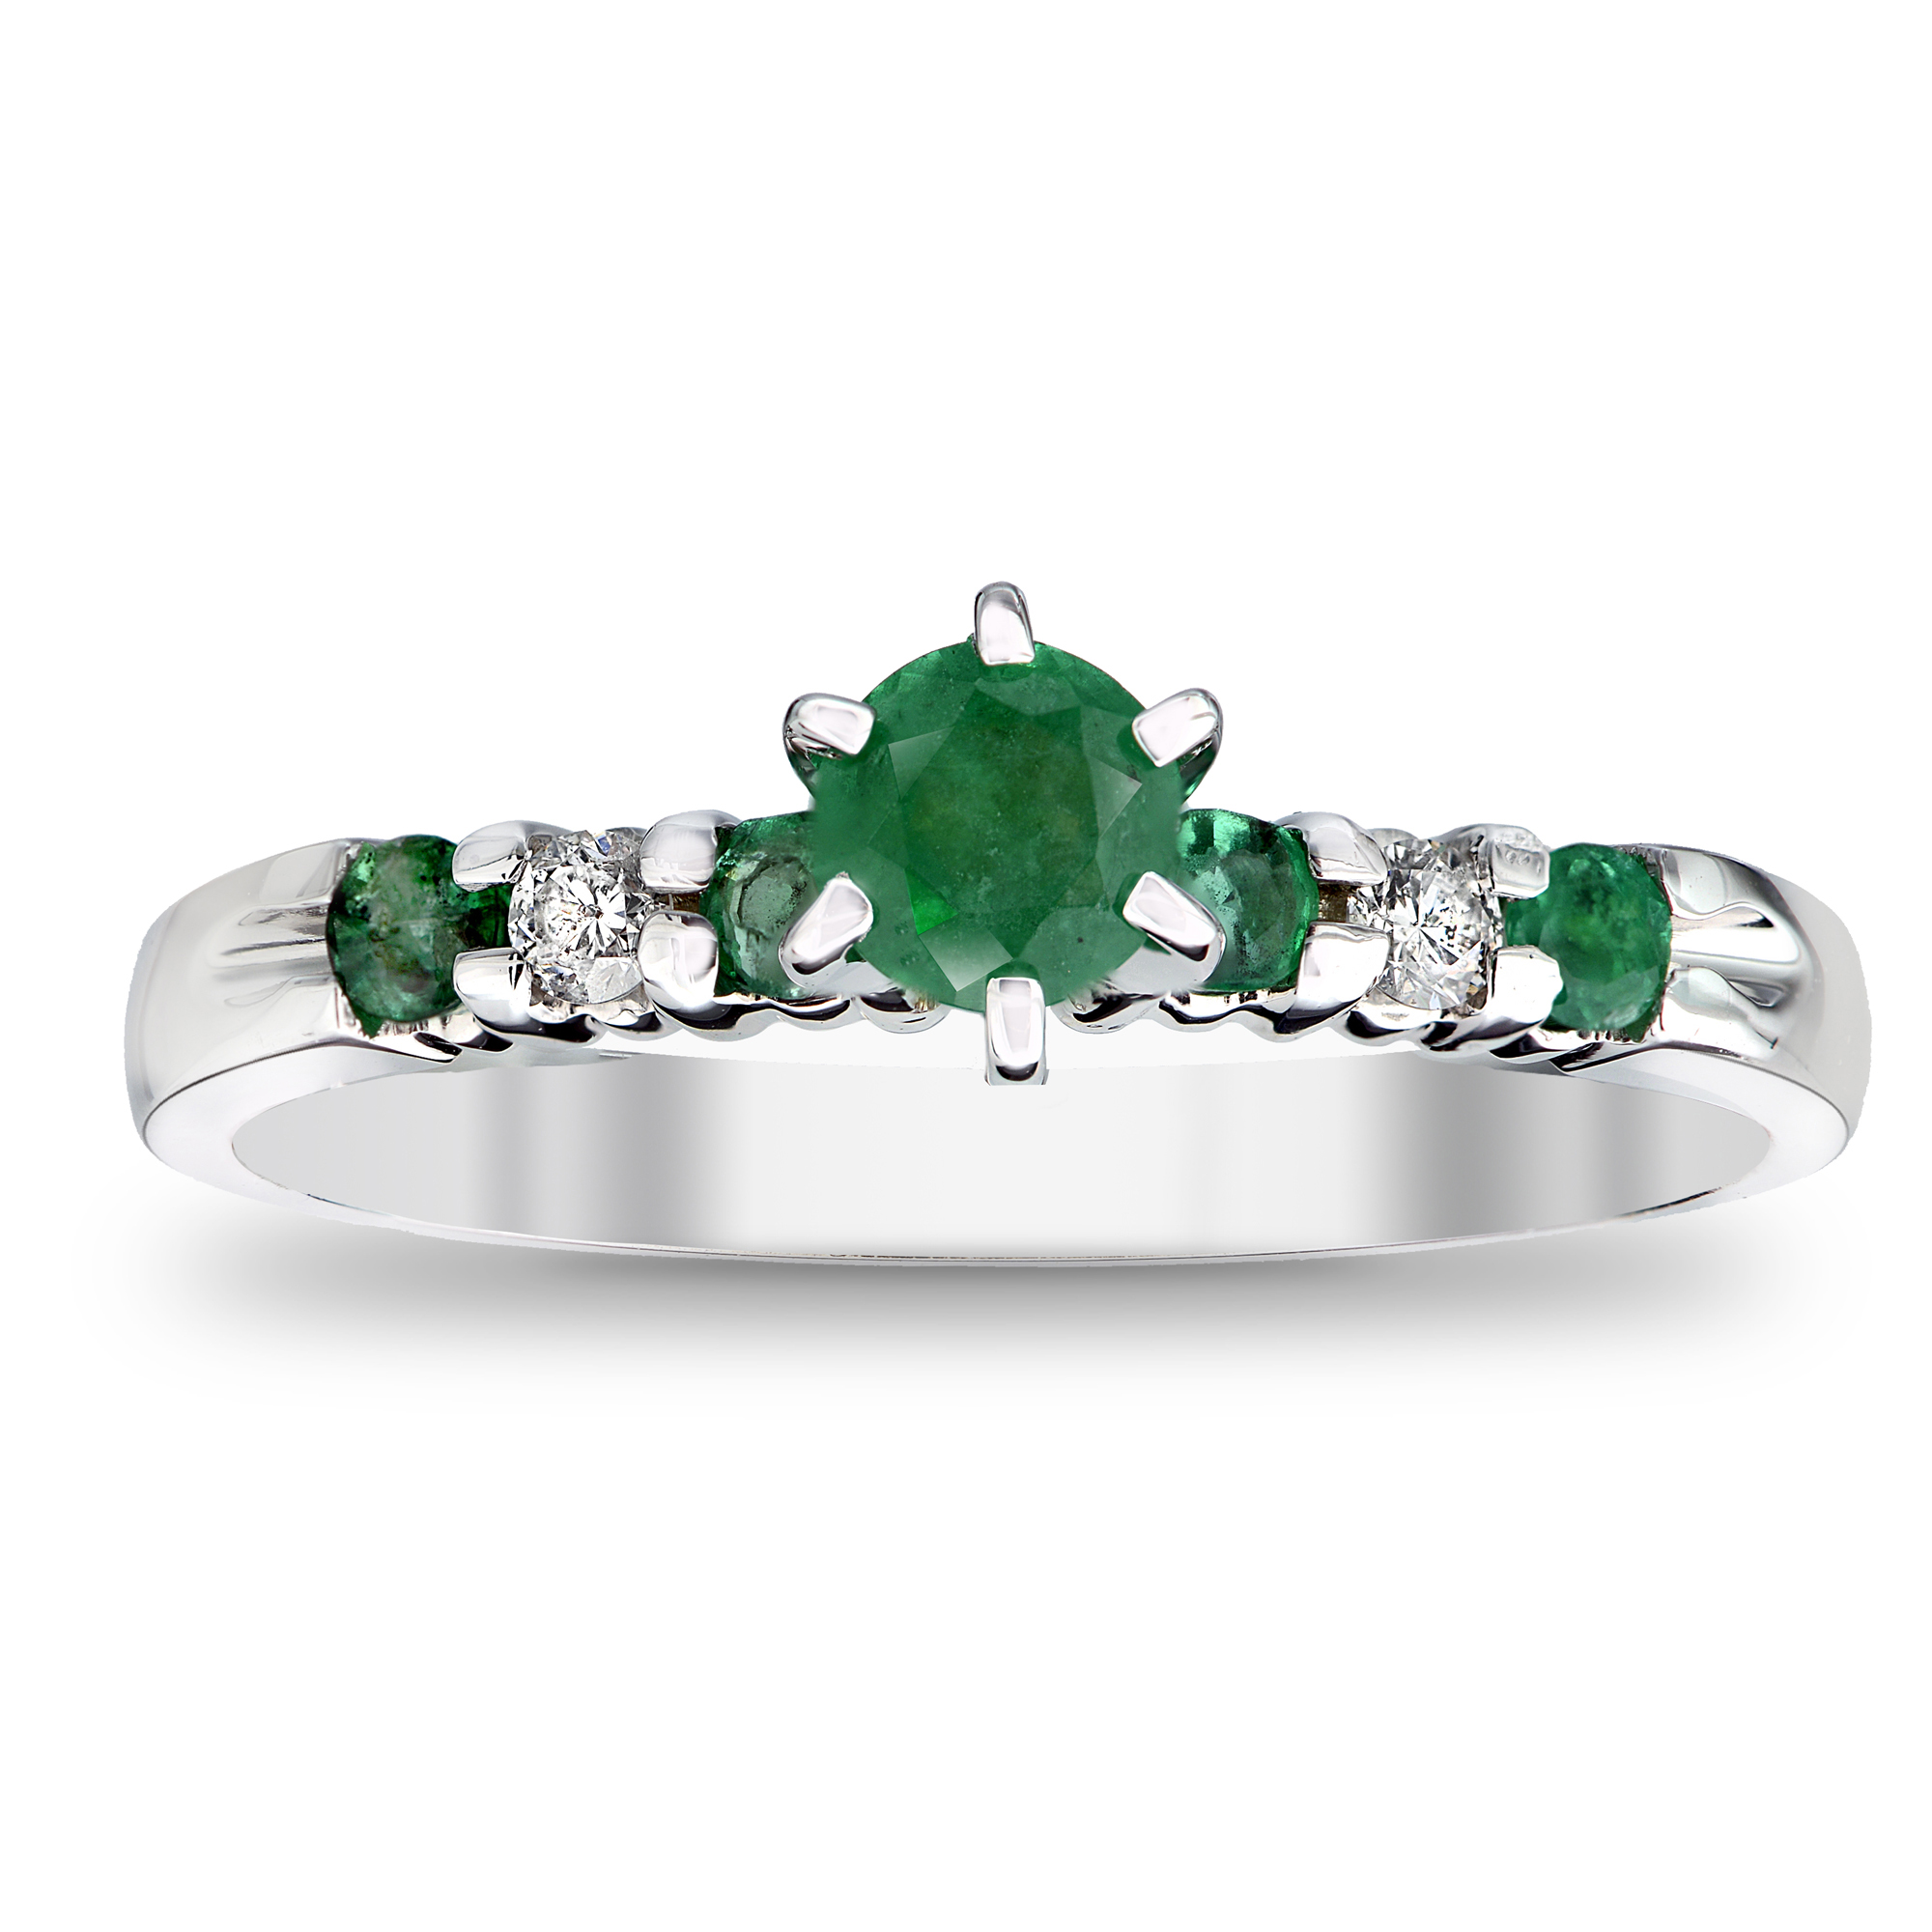 View 0.60ctw Diamond and Emerald Engagement Ring in 14k White Gold